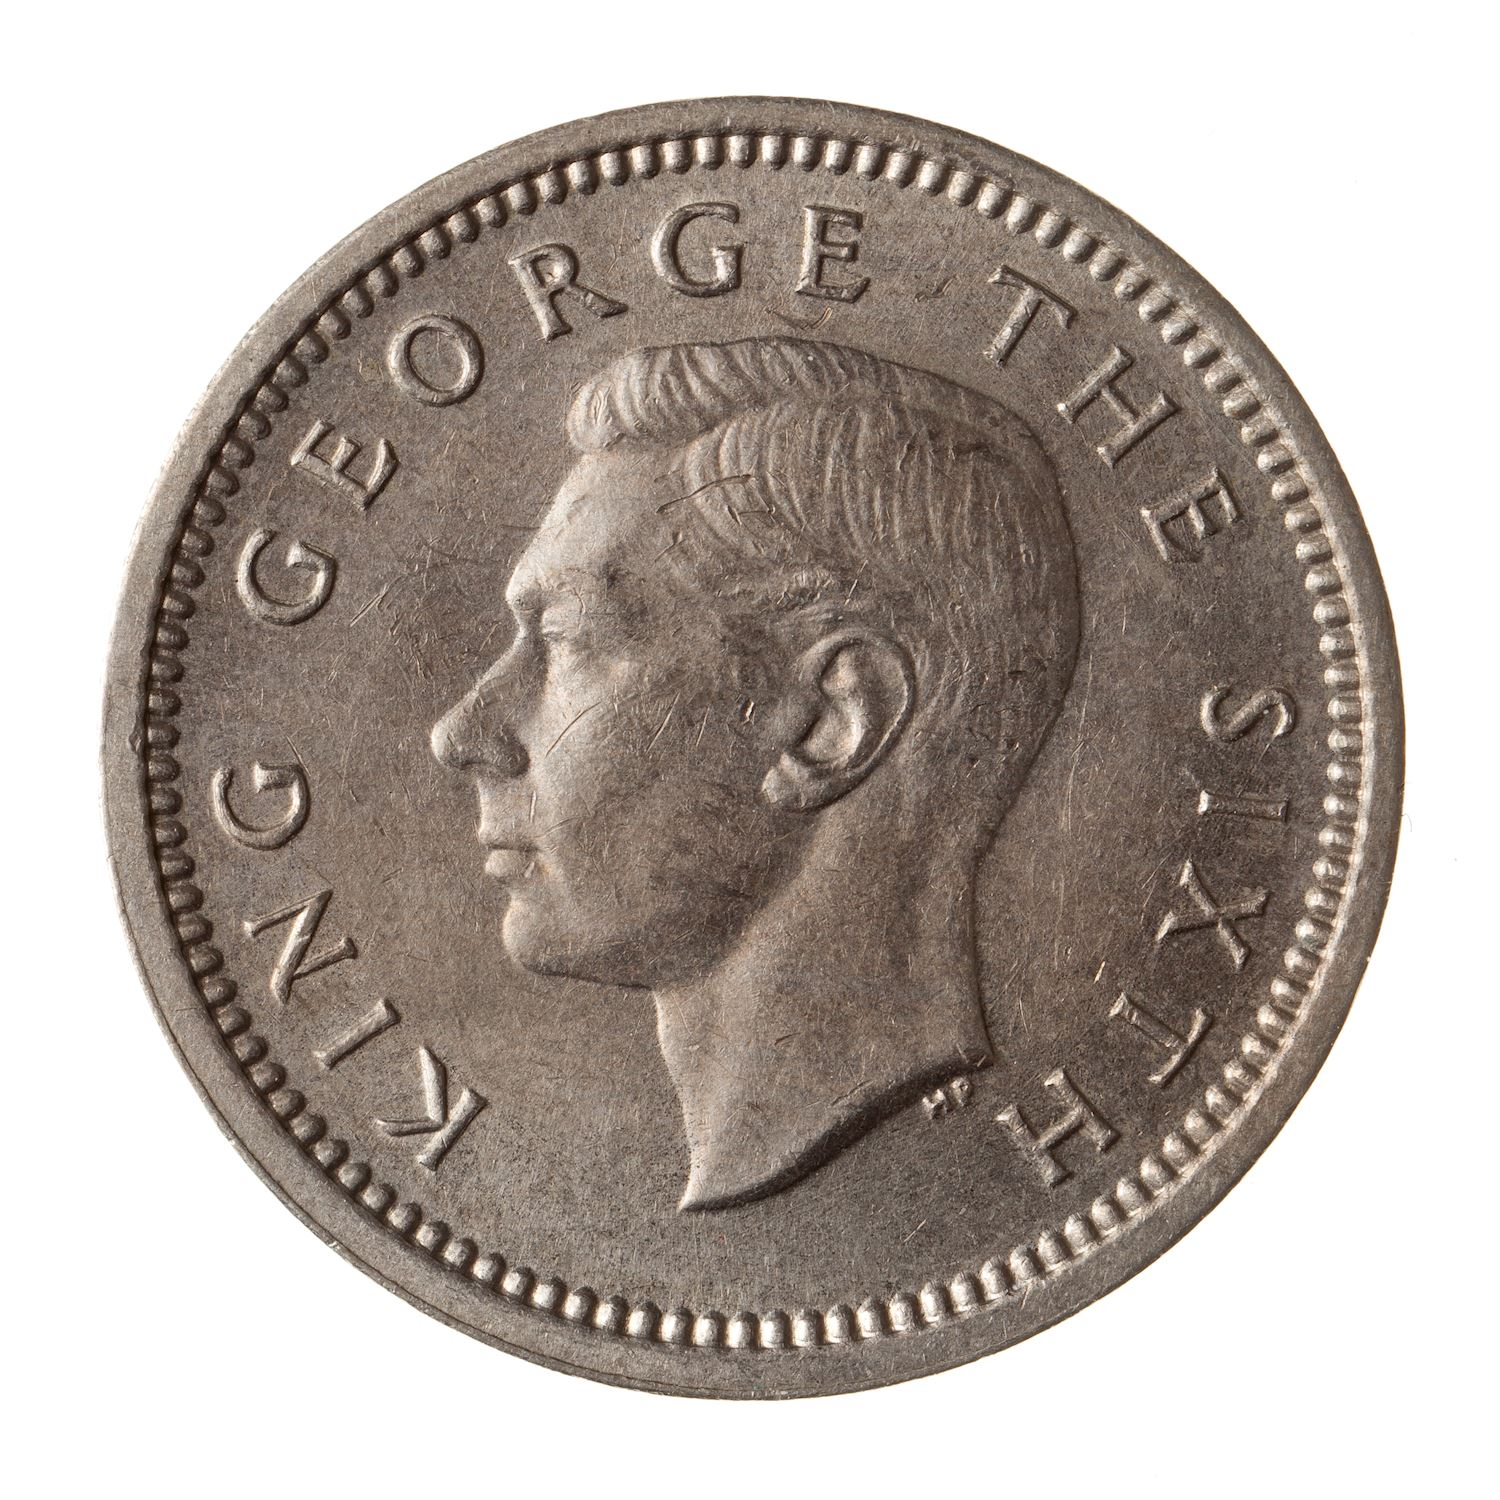 Threepence: Photo Coin - 3 Pence, New Zealand, 1948